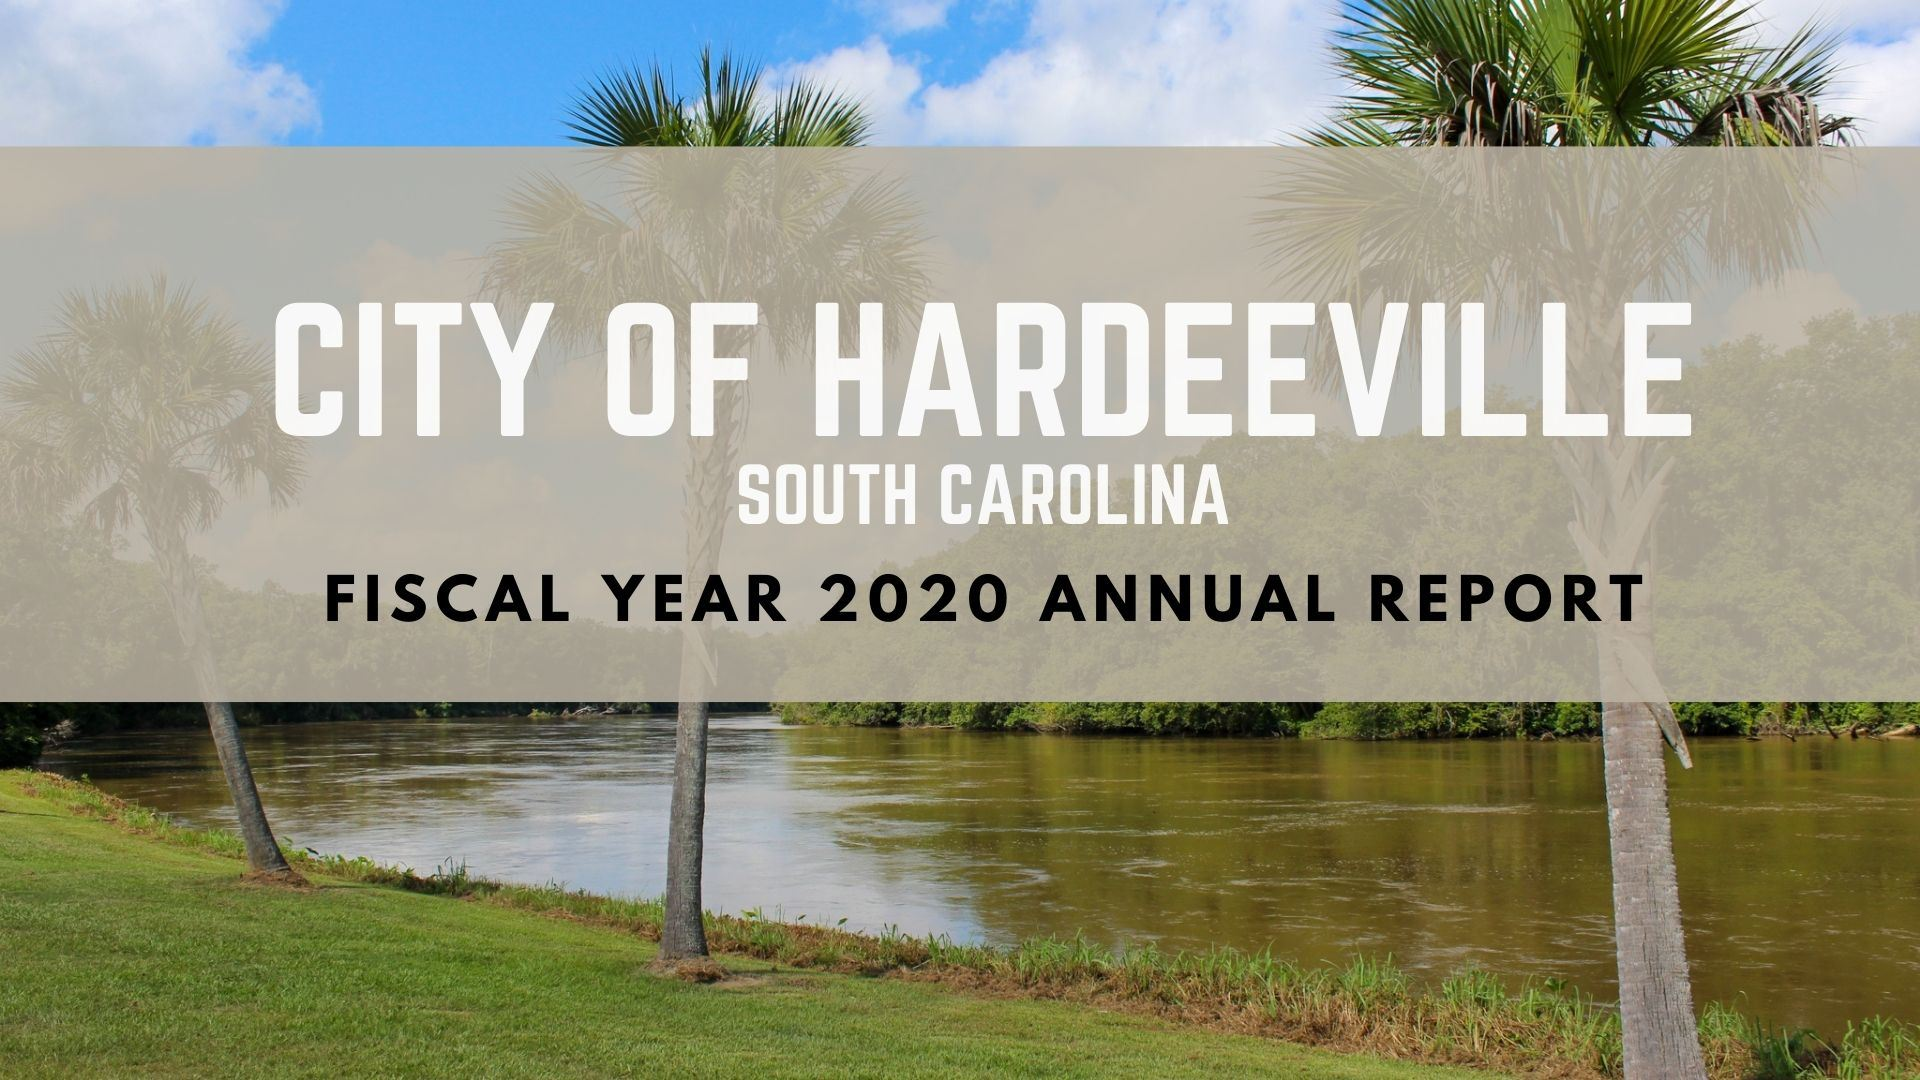 City of Hardeeville Annual Report